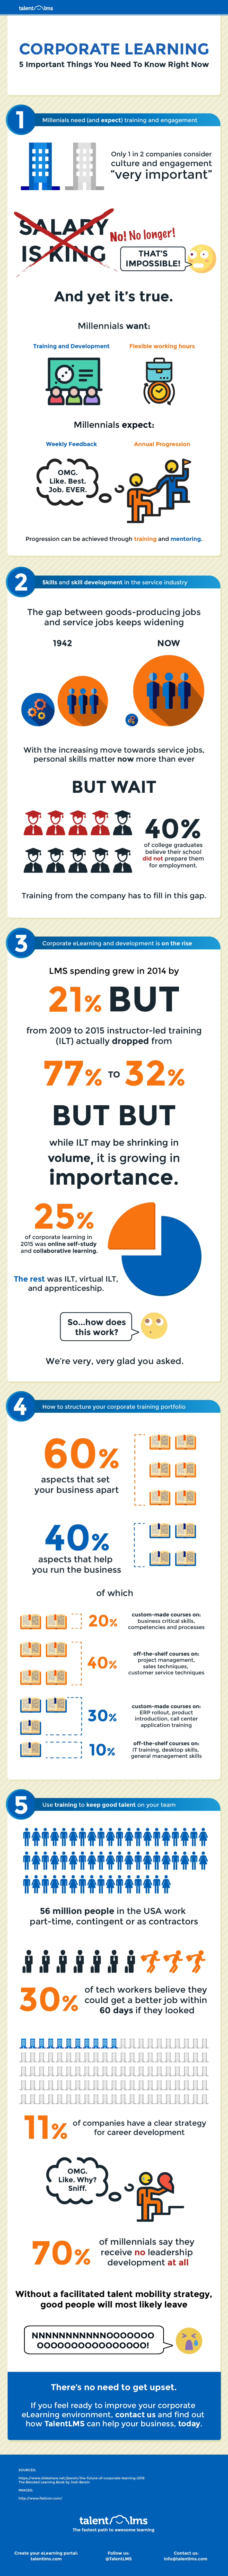 5 Facts About Corporate Learning You Need To Know [Inforgraphic] – TalentLMS Blog